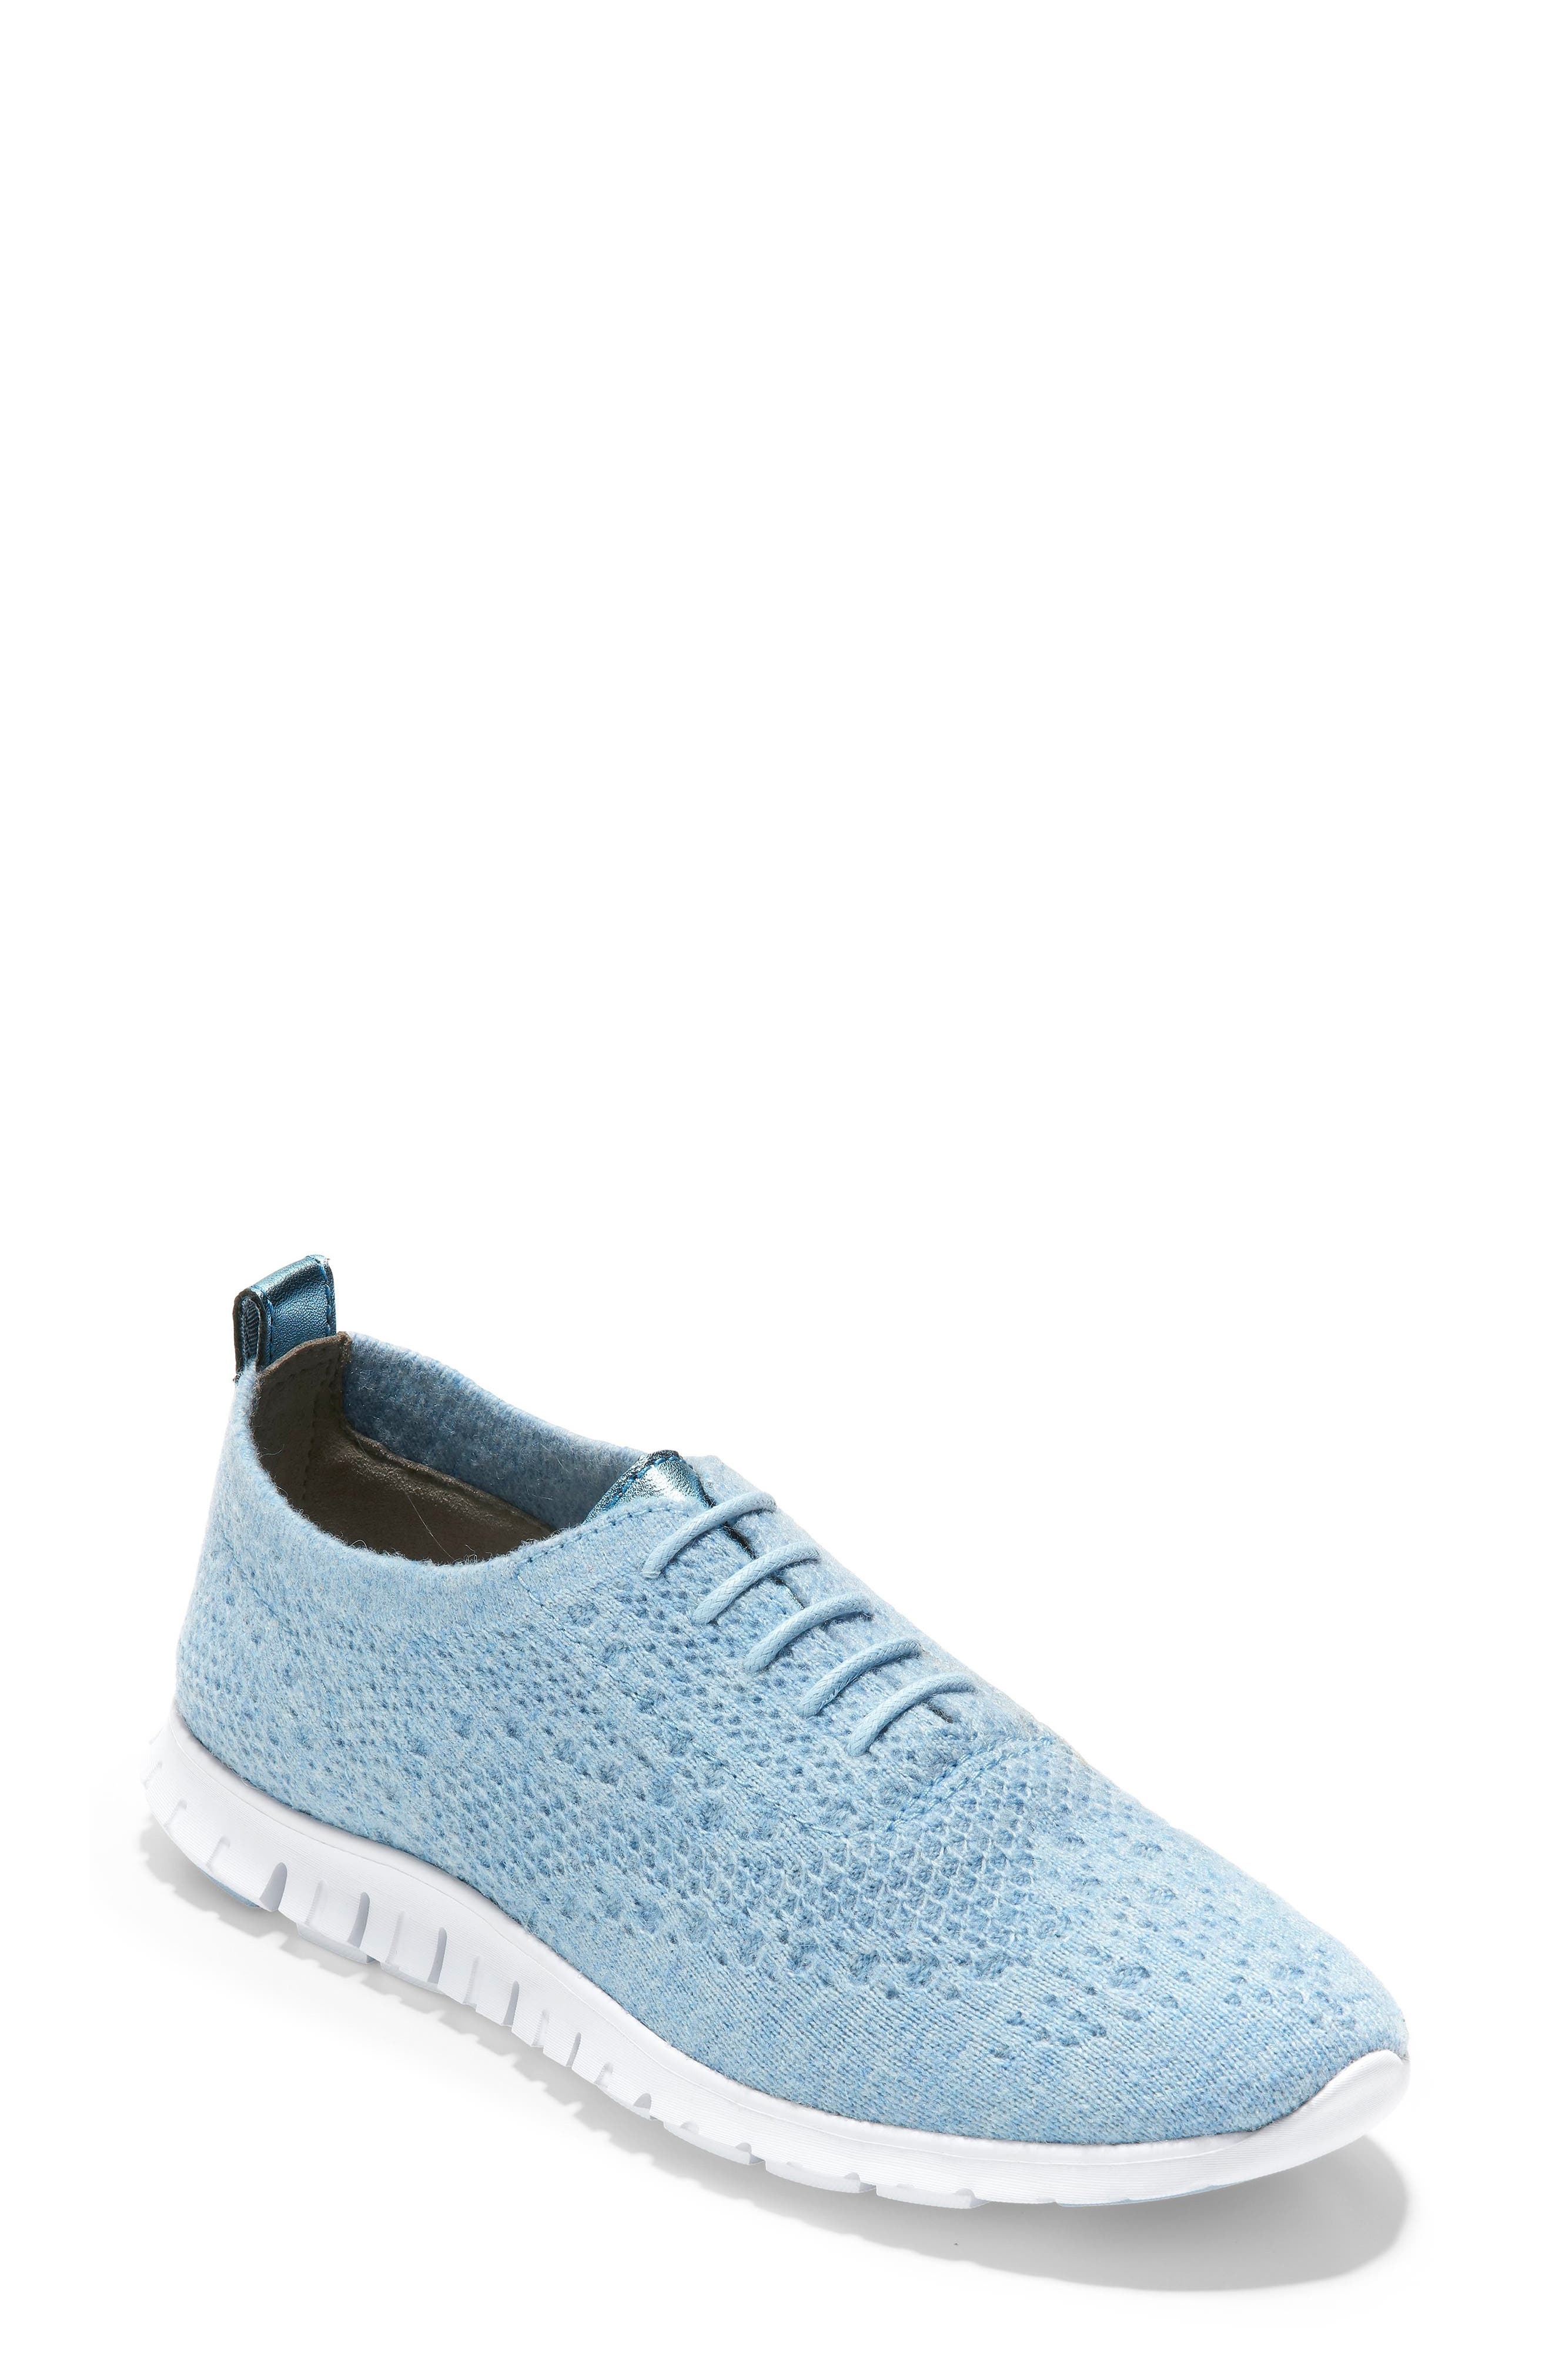 COLE HAAN ZeroGrand Stitchlite Wool Flat, Main, color, CHAMBRAY BLUE FABRIC